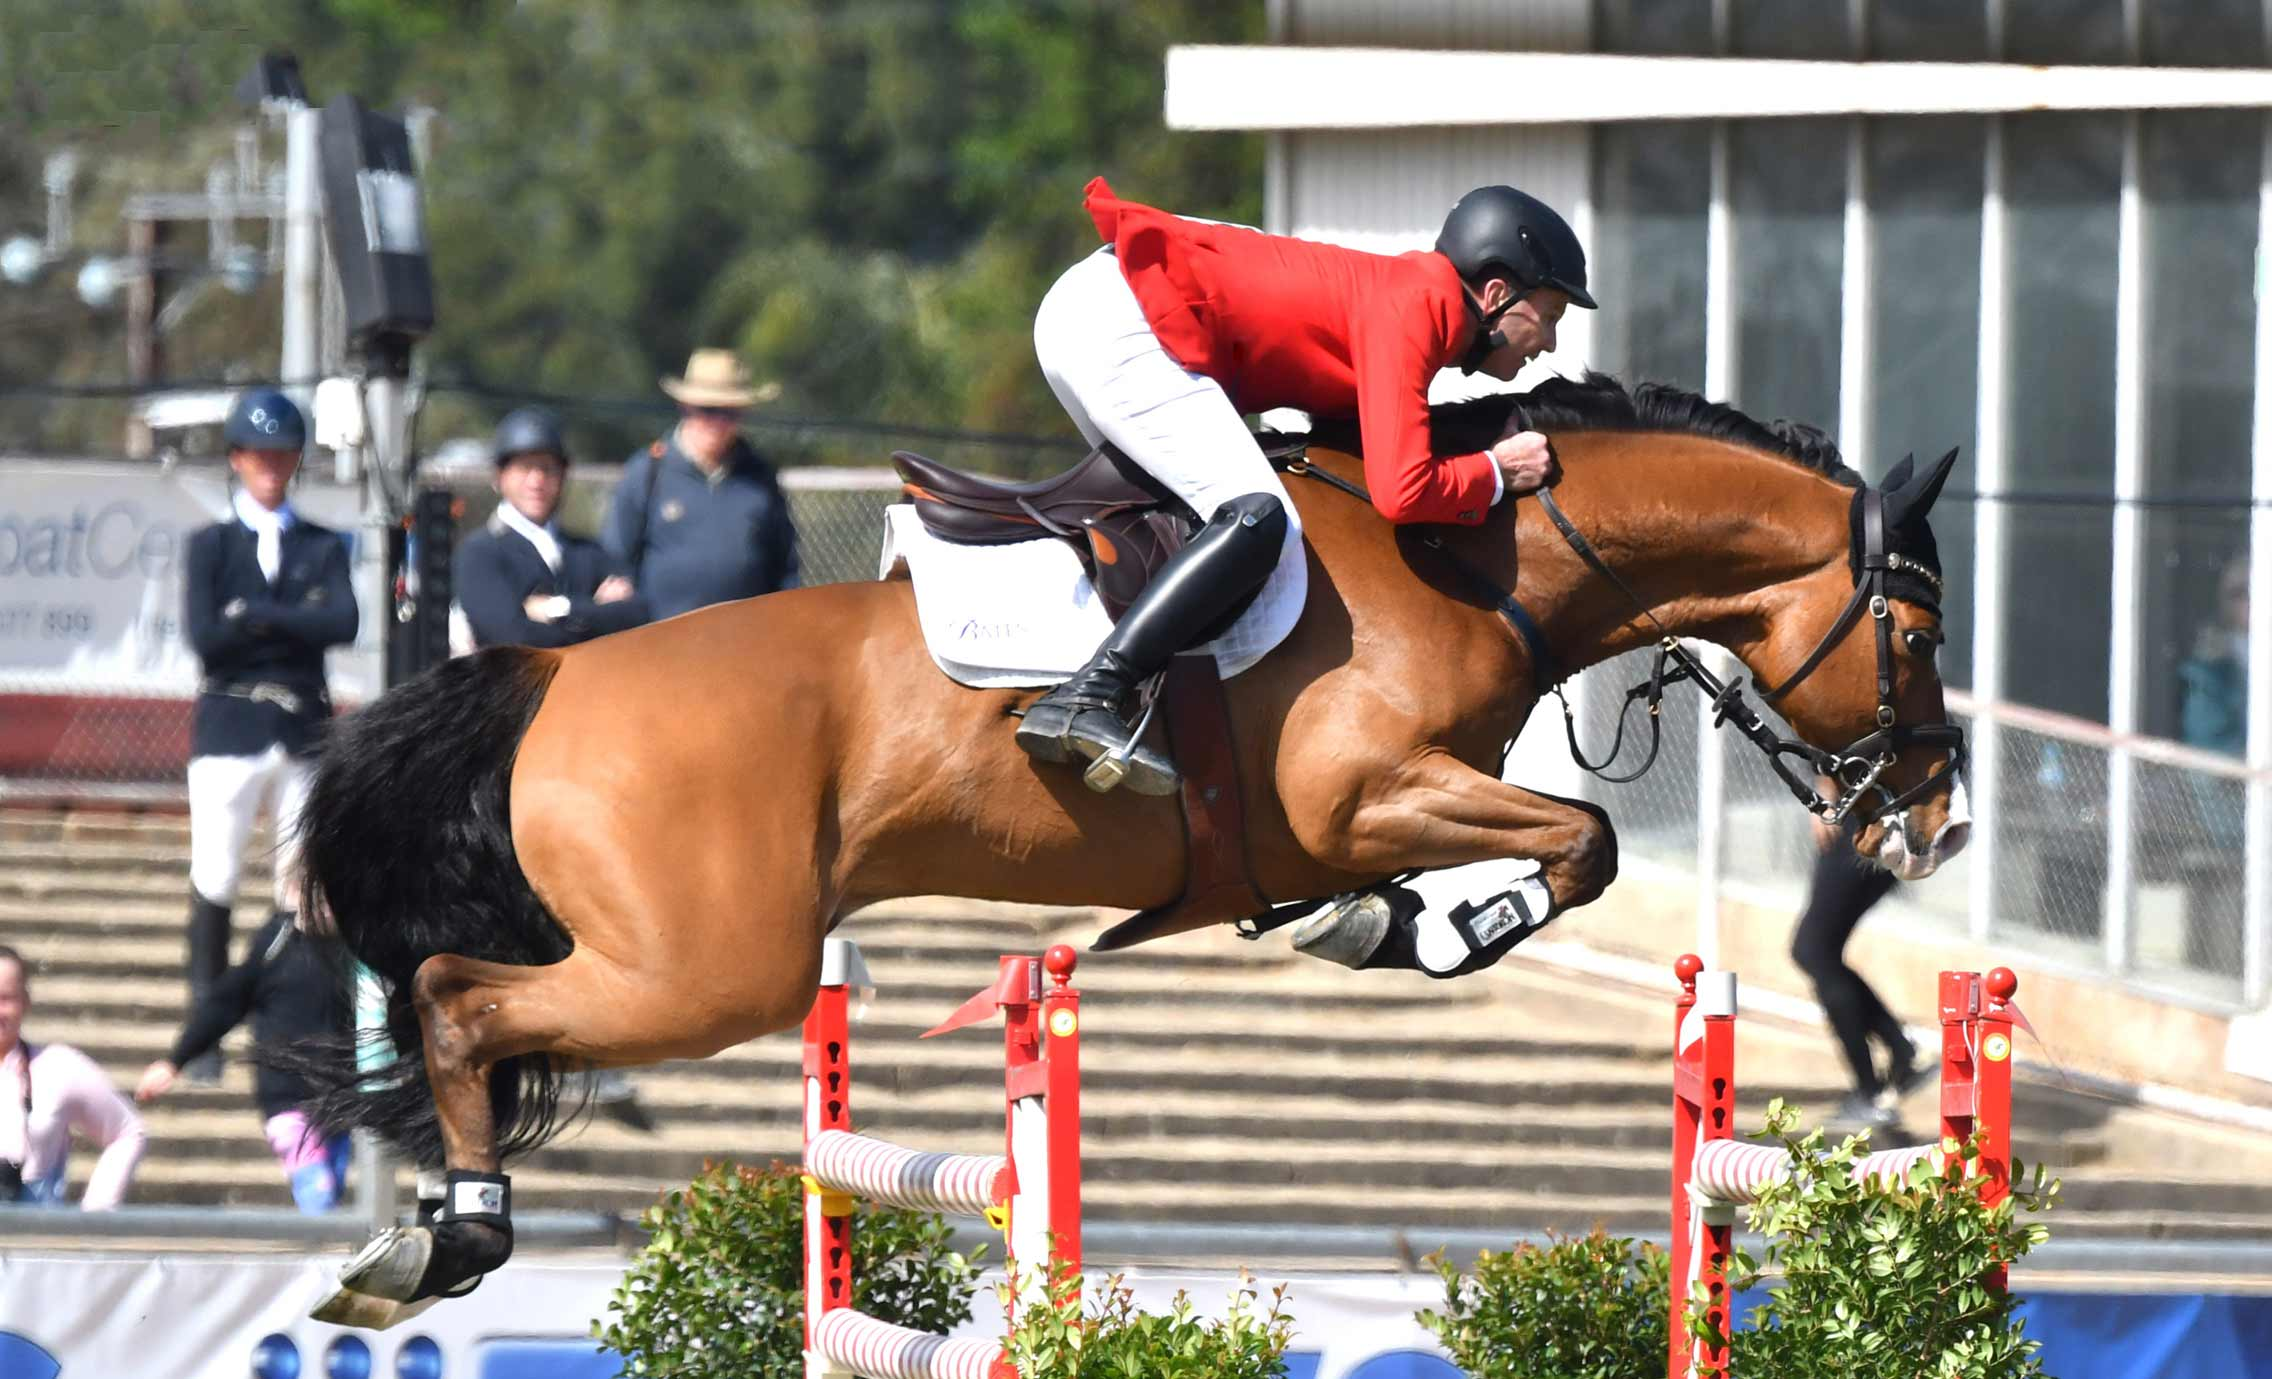 Russell Johnstone And Daprice Soar To Adelaide World Cup